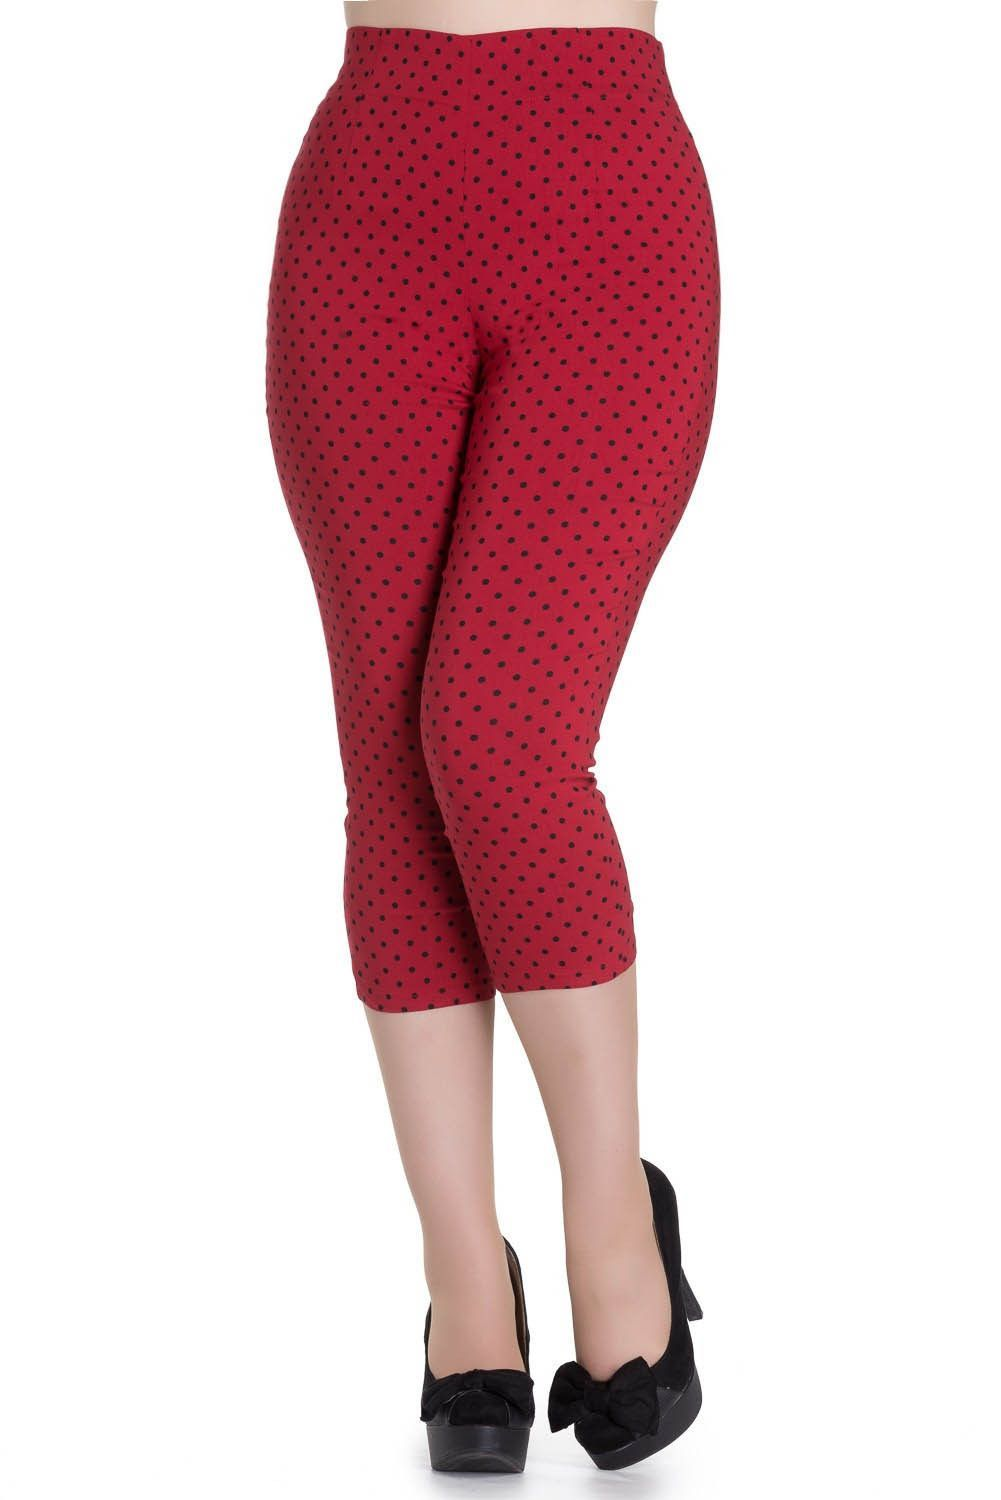 HELL BUNNY 50s KAY CAPRIS cropped POLKA DOT TROUSERS pedal pushers BLACK RED